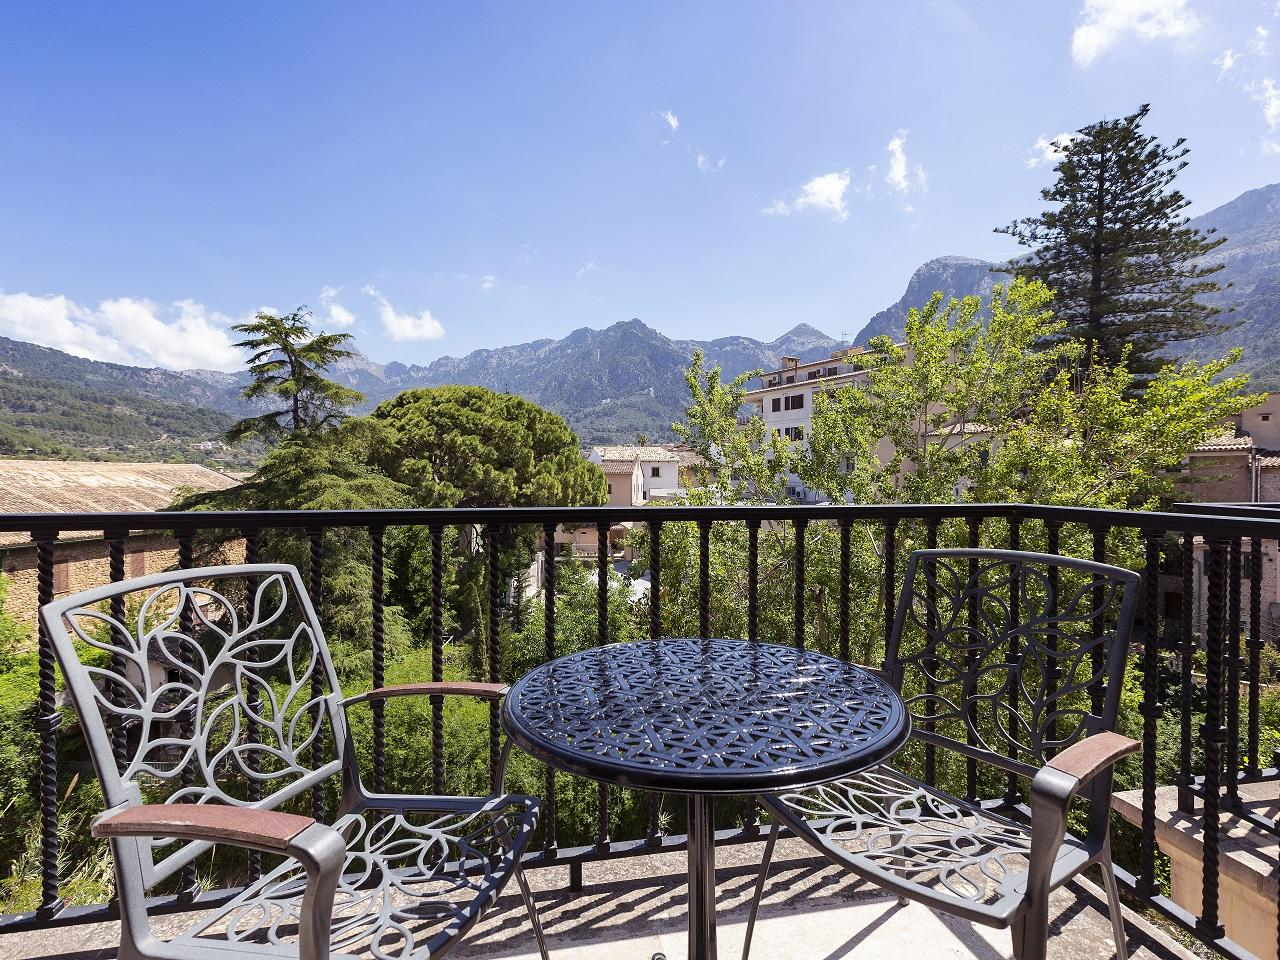 Non-refundable rate - 10% Off at Gran Hotel Sóller in Sóller, Majorca